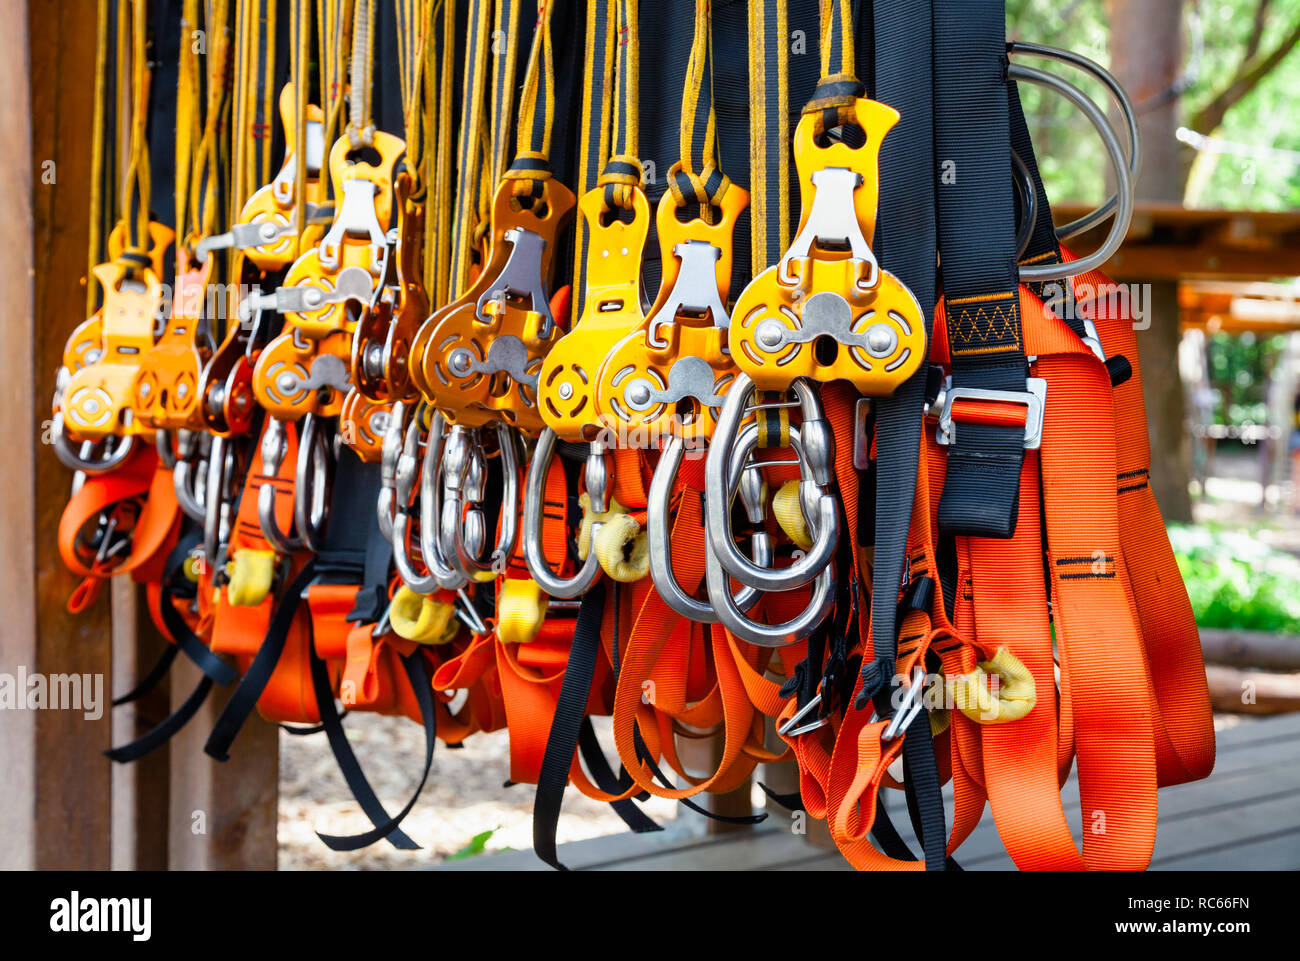 Close-up shot of safety harness self belay equipment at ropes course in outdoor treetop adventure park - Stock Image